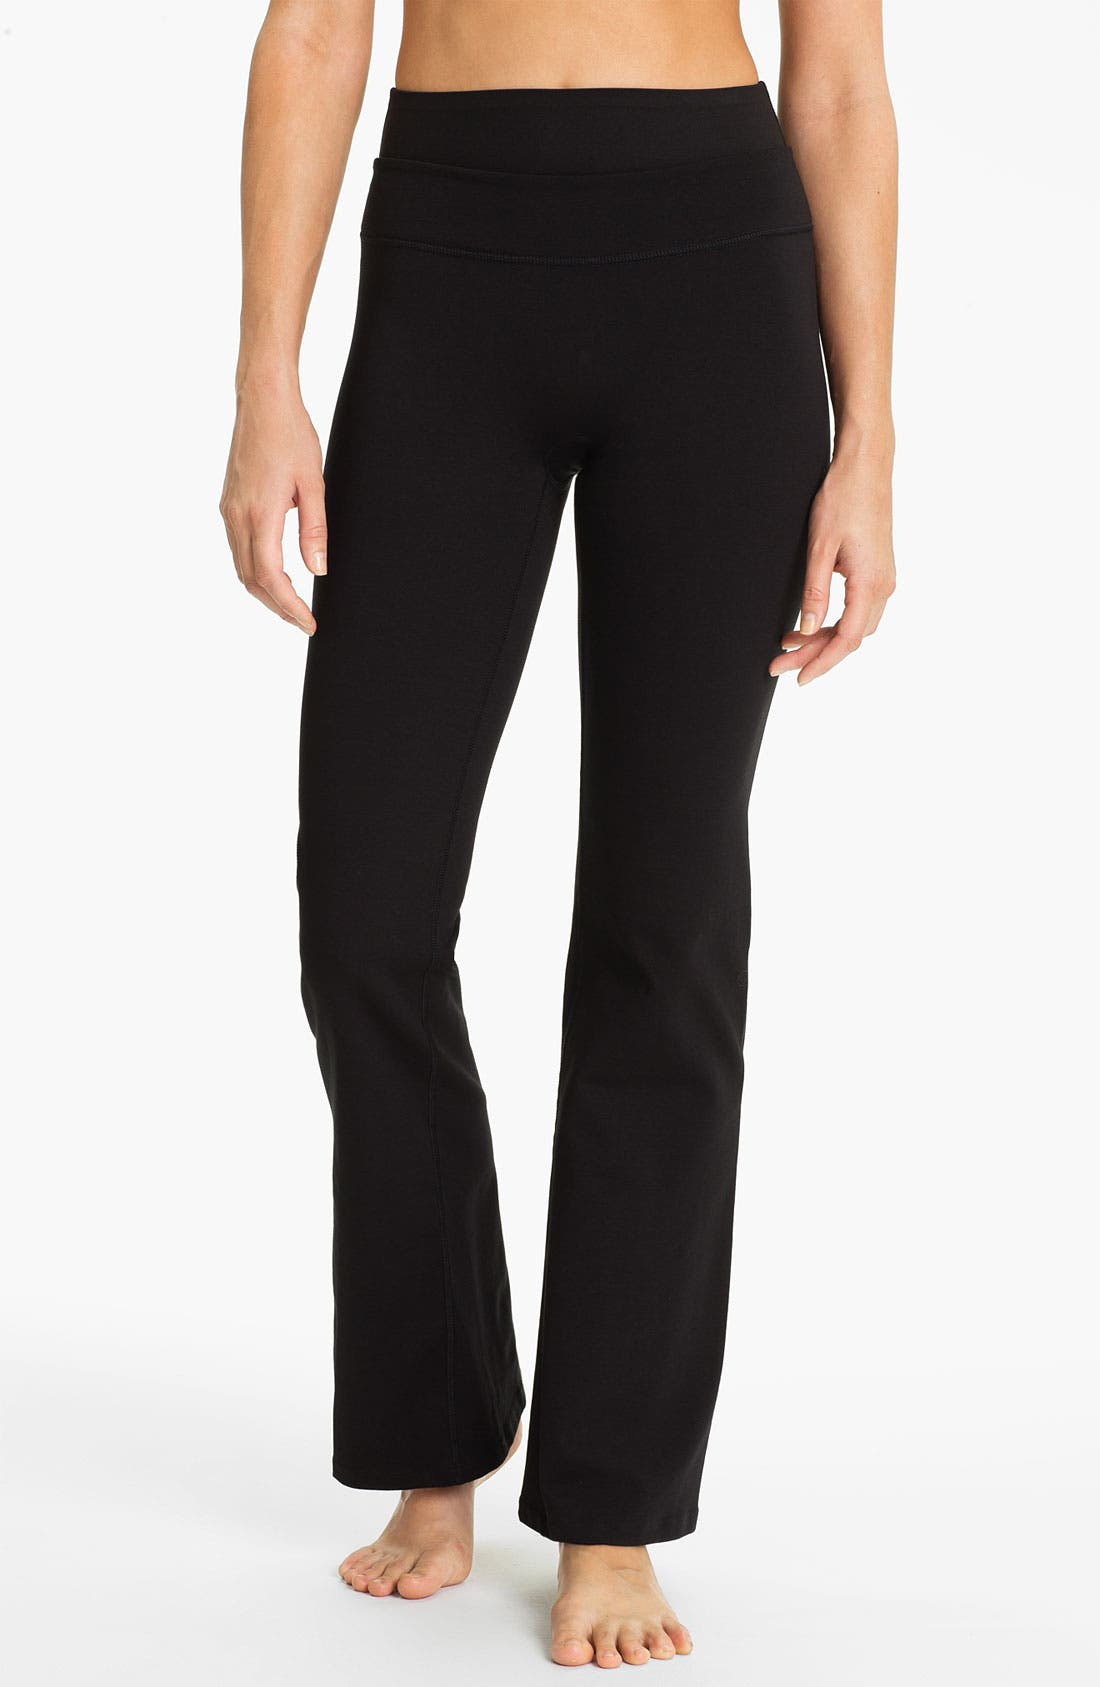 Alternate Image 1 Selected - SPANX® 'Power' Workout Pants